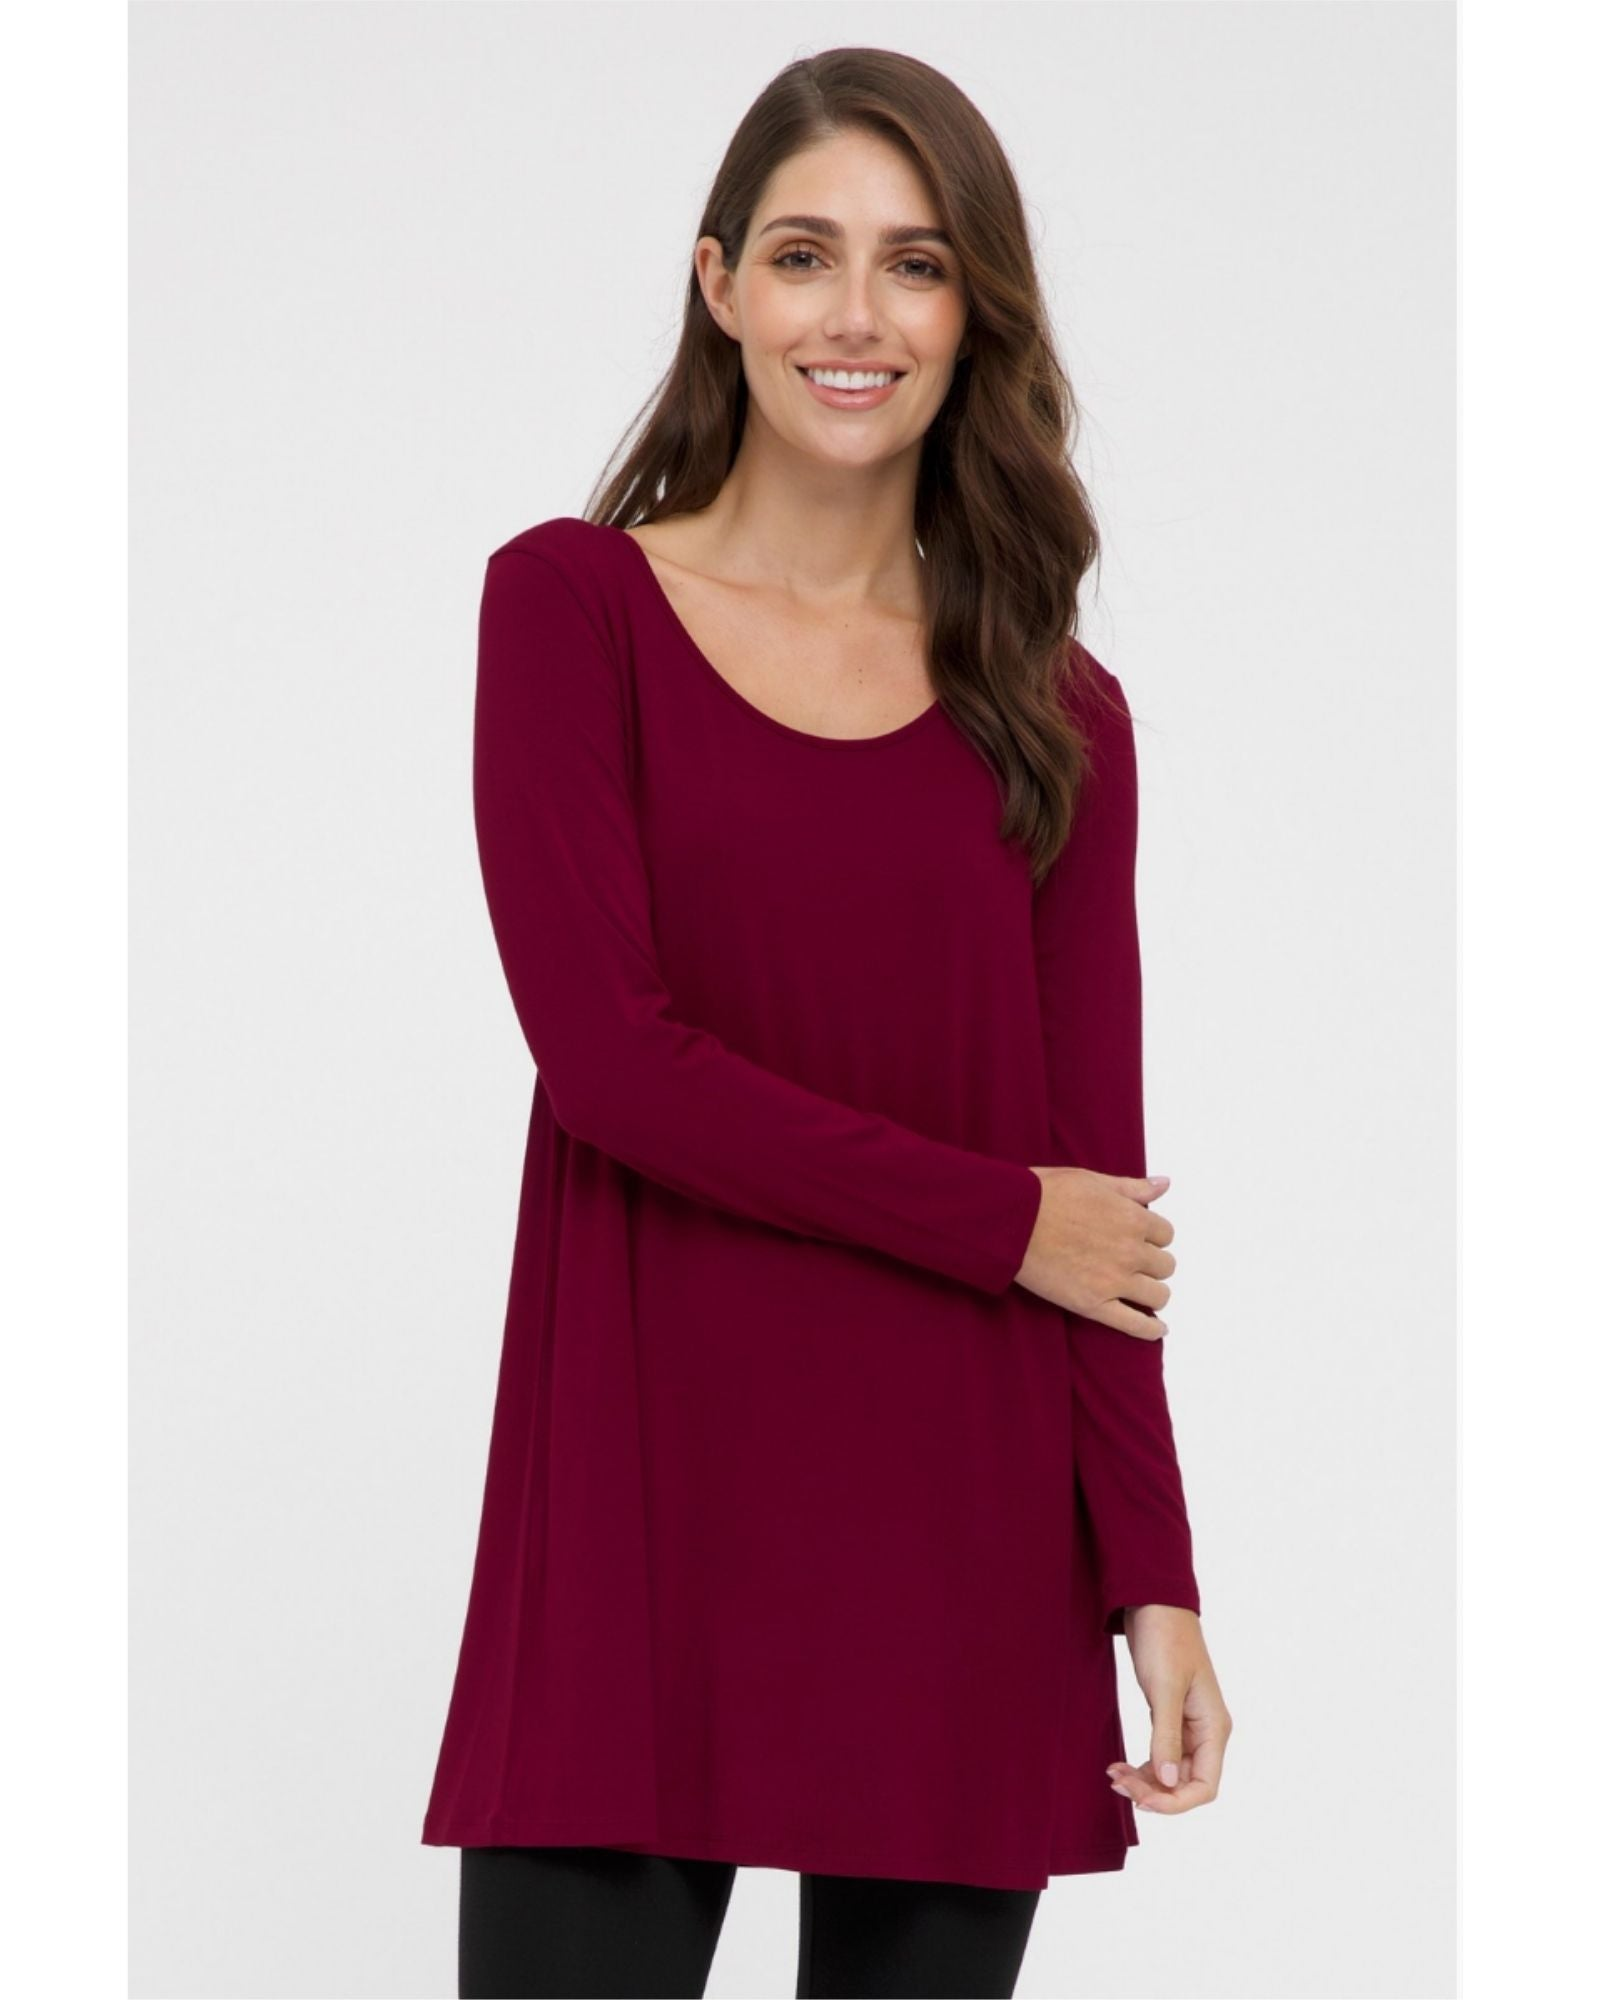 Bamboo Leanne Tunic Red Size 10-24